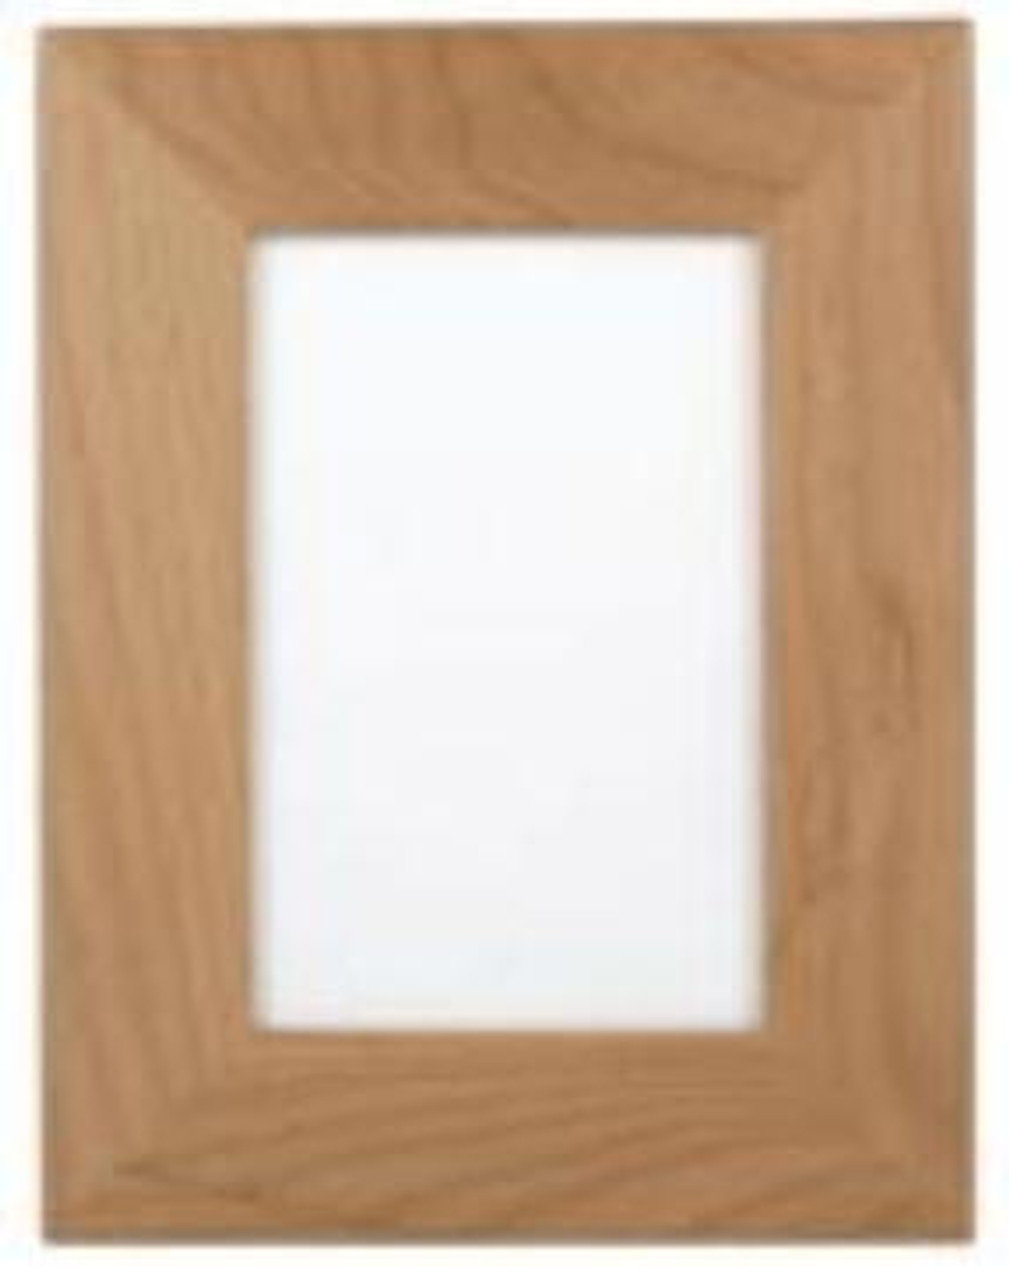 "AWF 0355:  Alder Wood Plaque Frame for 3.5"" x 5""  Picture. Over all size 6"" x 7.5"""